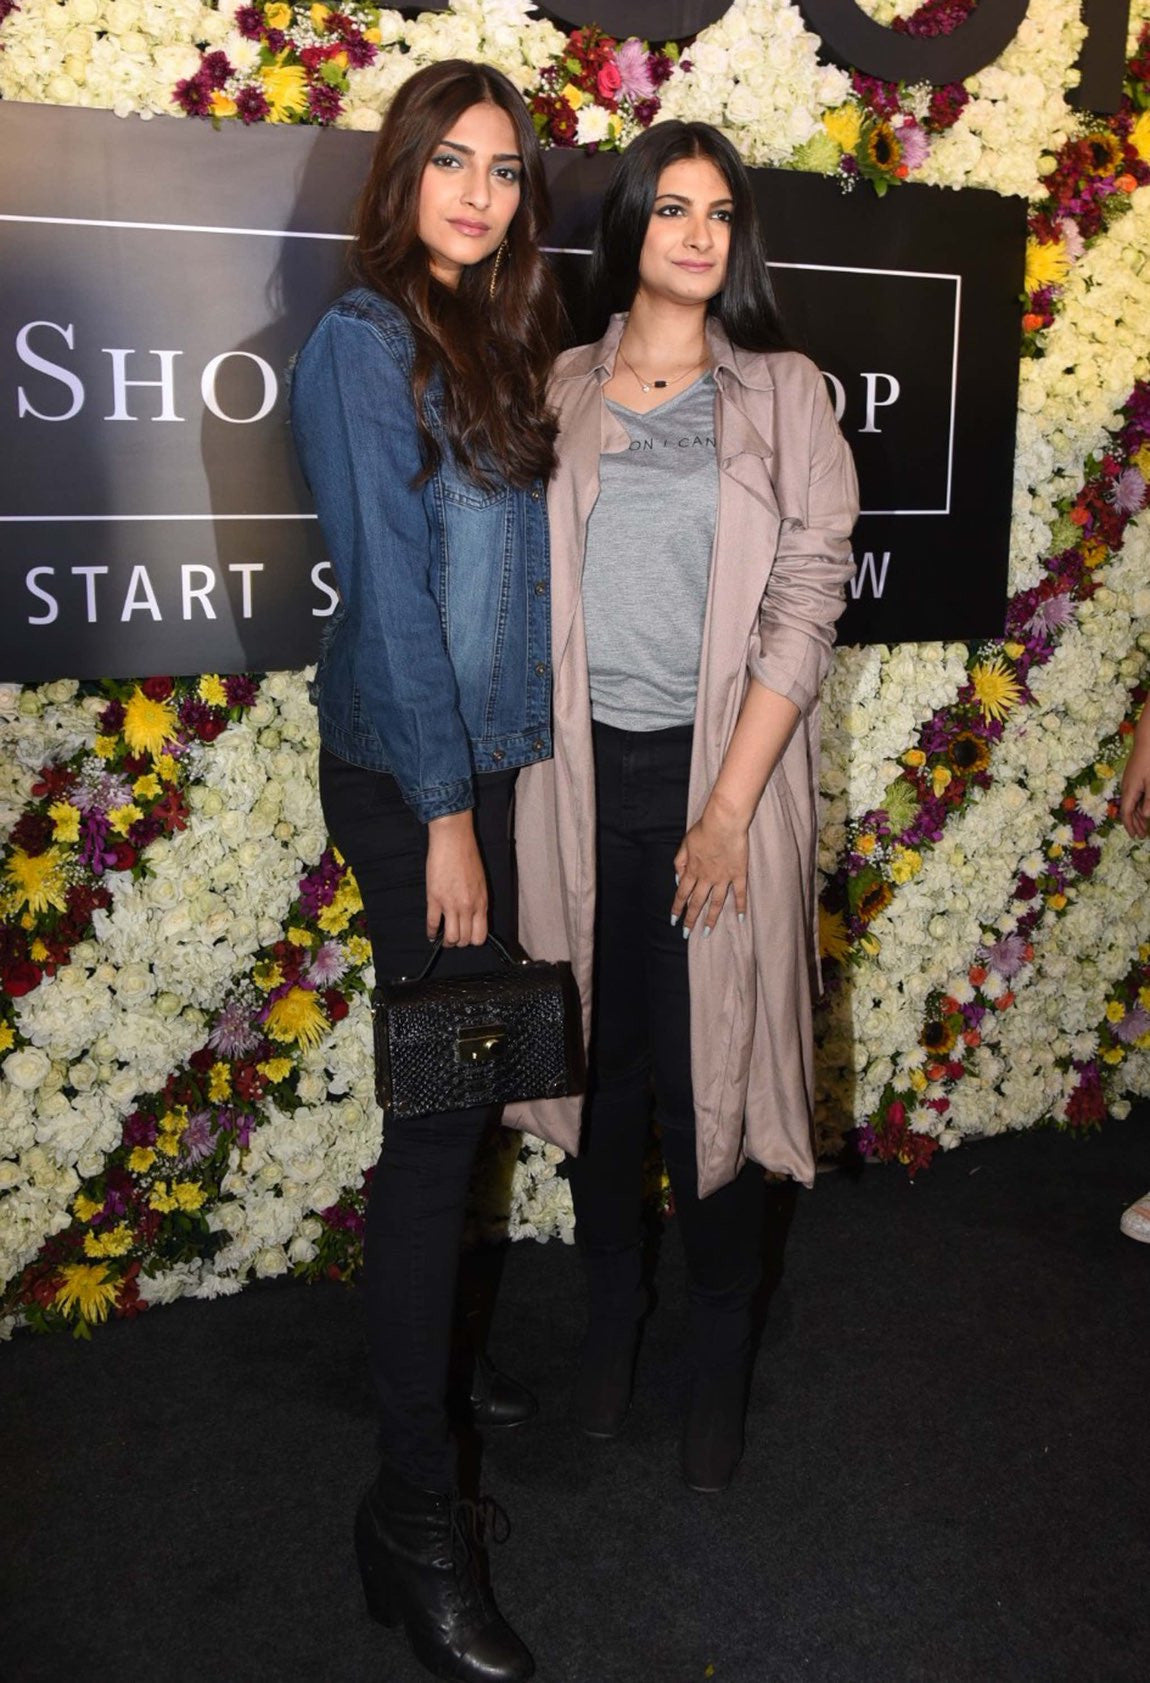 Sonam Kapoor & her Sister Rhea Kapoor at the launch of their fashion store